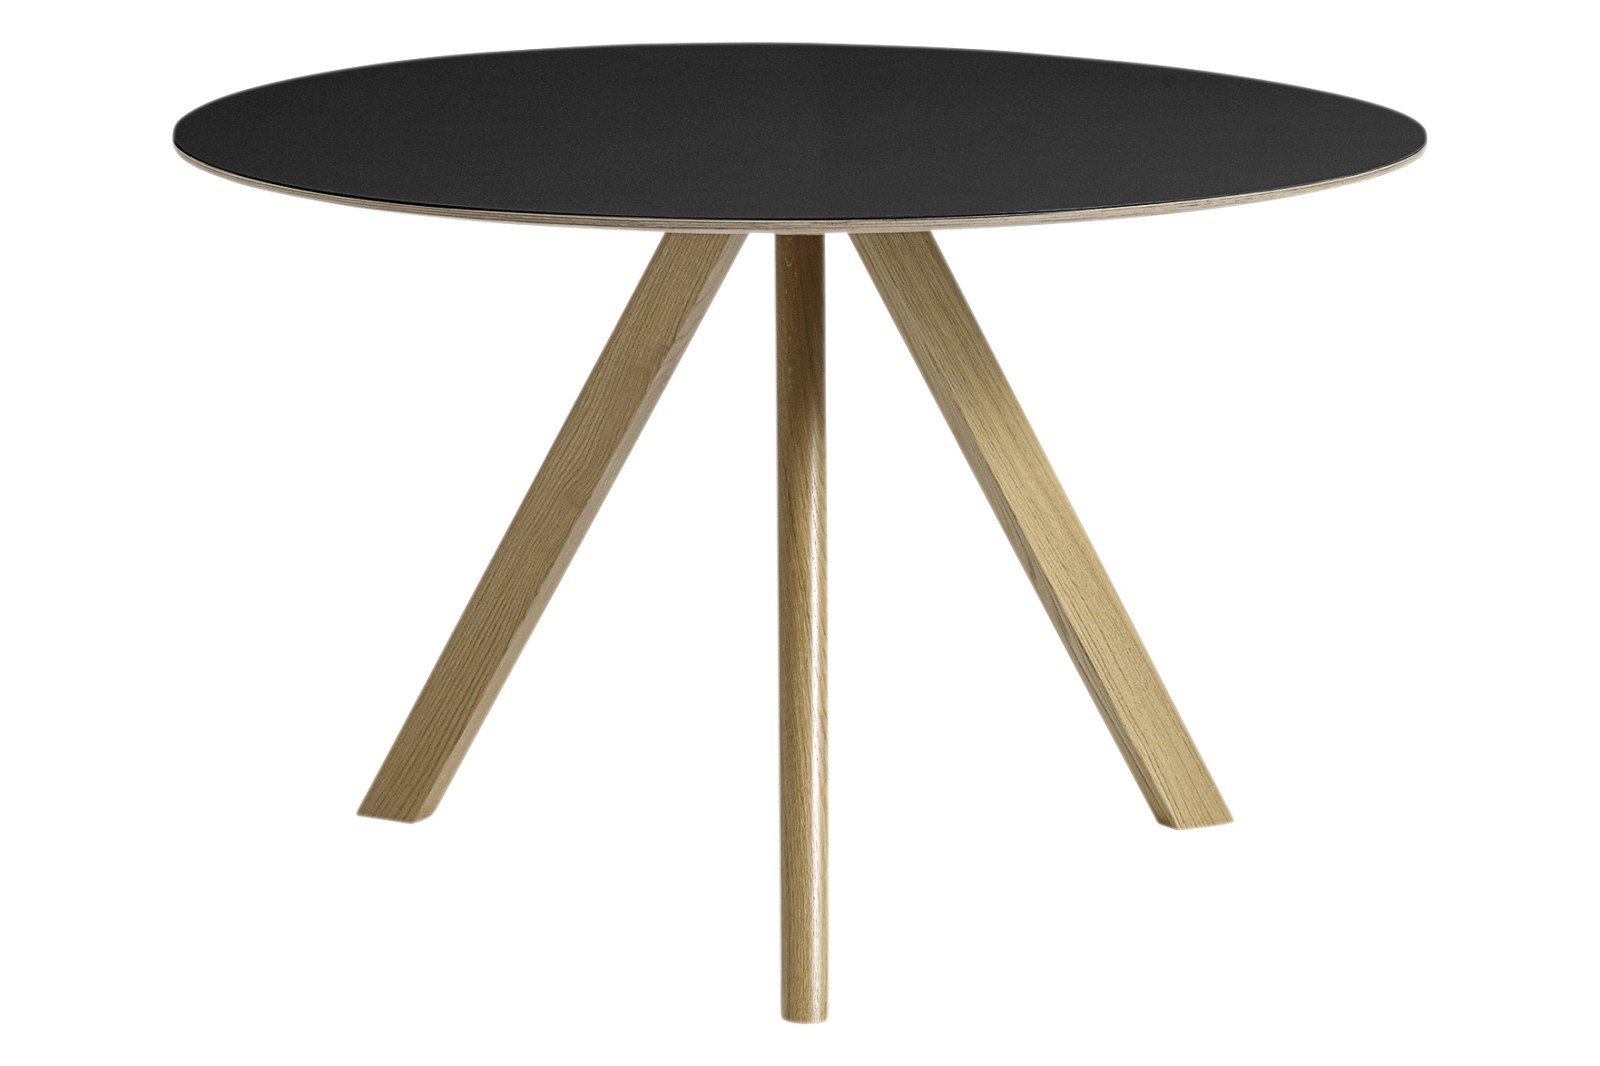 Copenhague Linoleum Top Round Dining Table CPH20 Clear Lacquered Oak Base, Black Top, Large